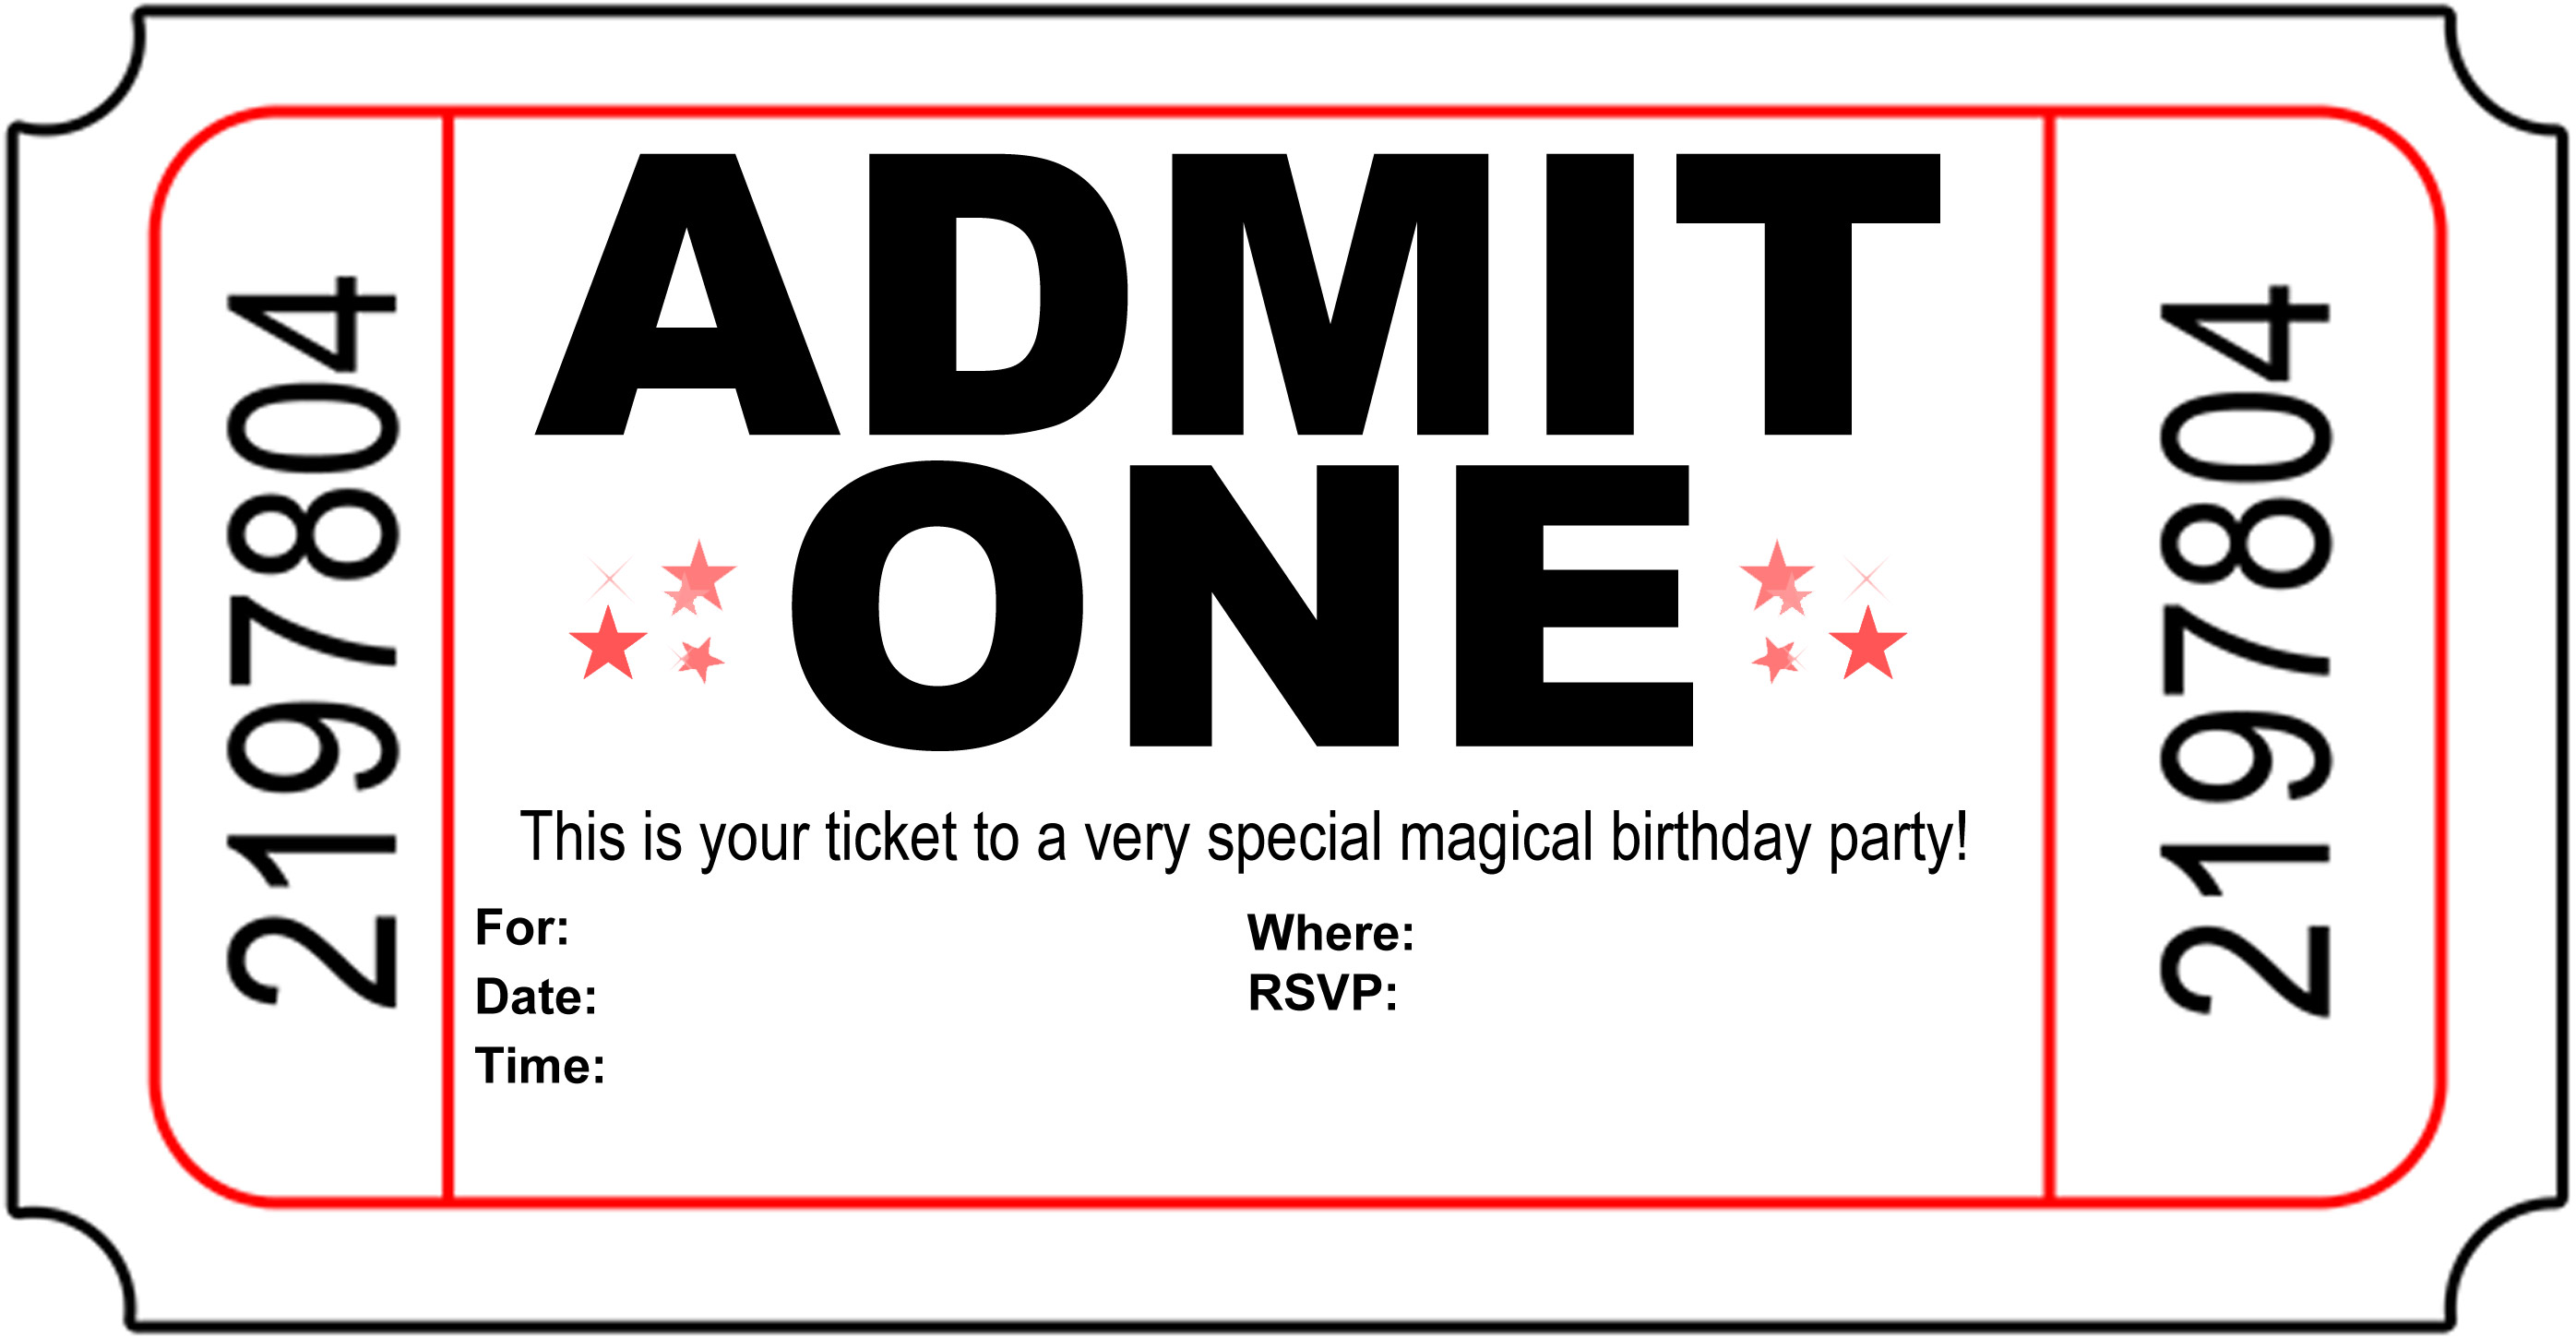 Free Printable Ticket Invitations Images Free Printable Movie - Movie ticket invitation template free